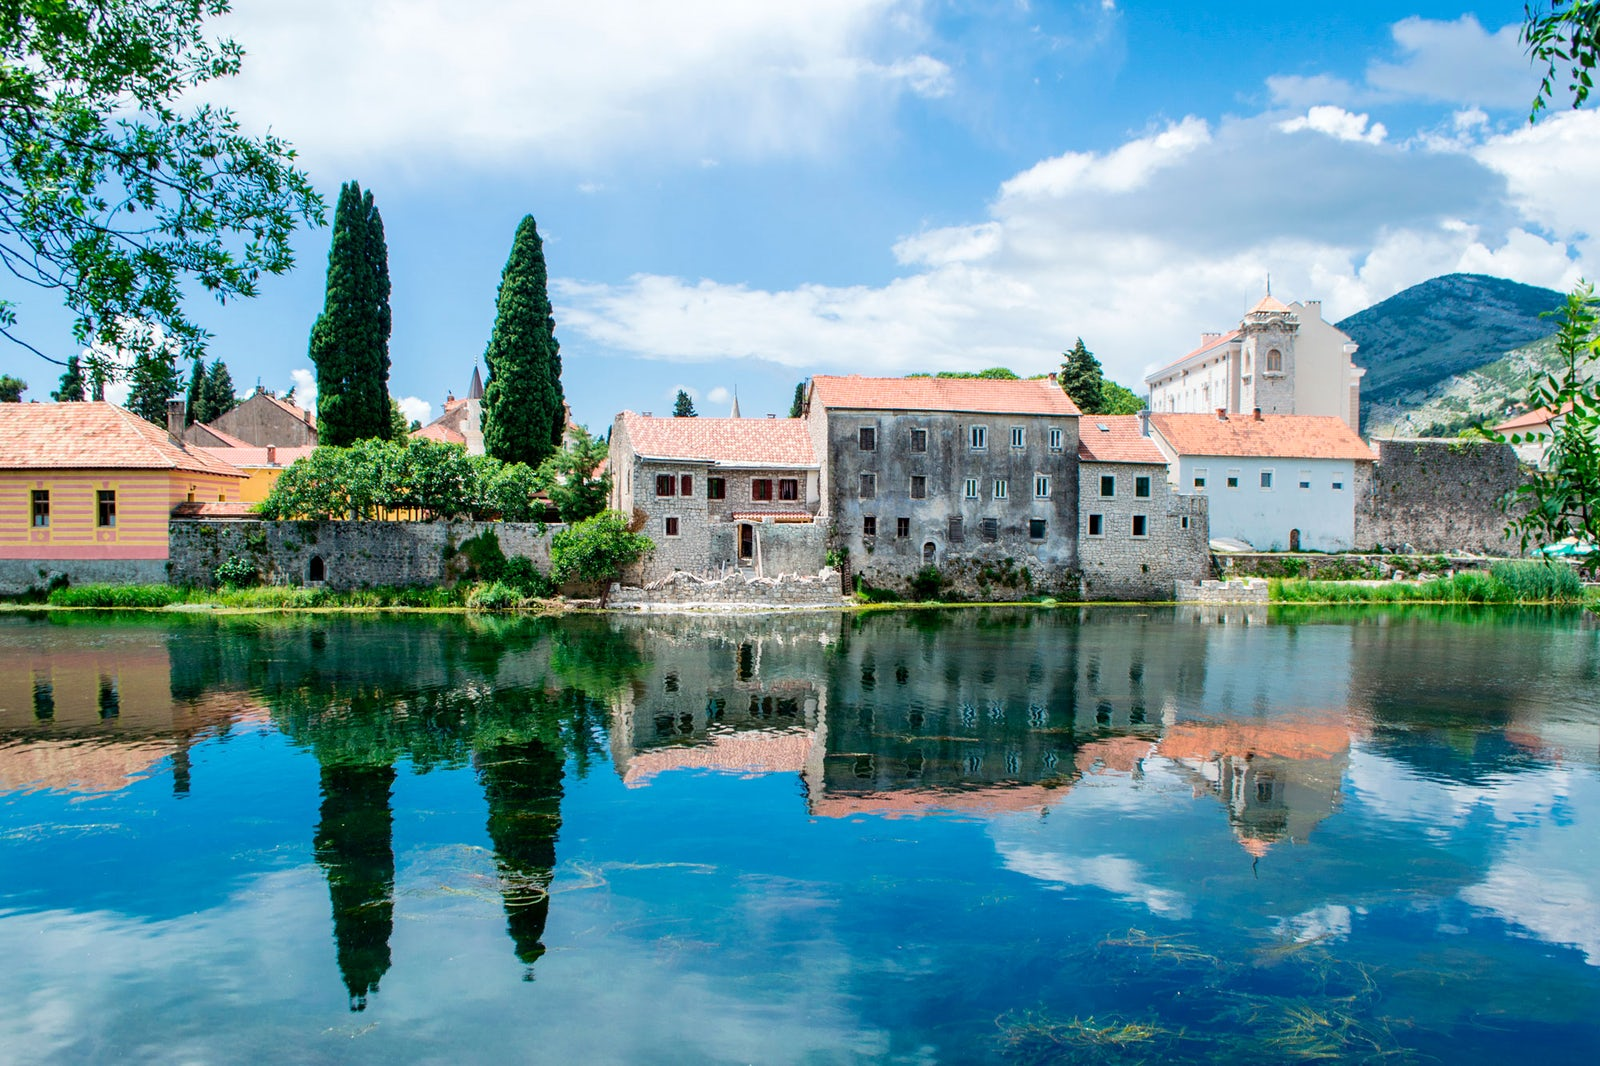 Cover picture © Credits to Tourism organisation of Trebinje